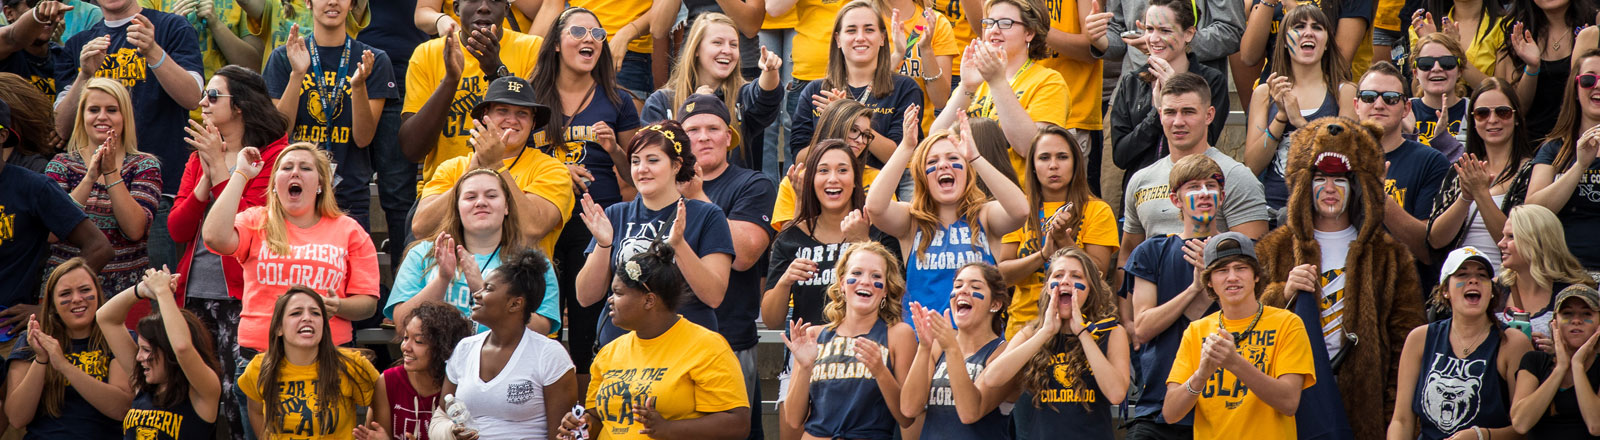 Student cheering at a football game.